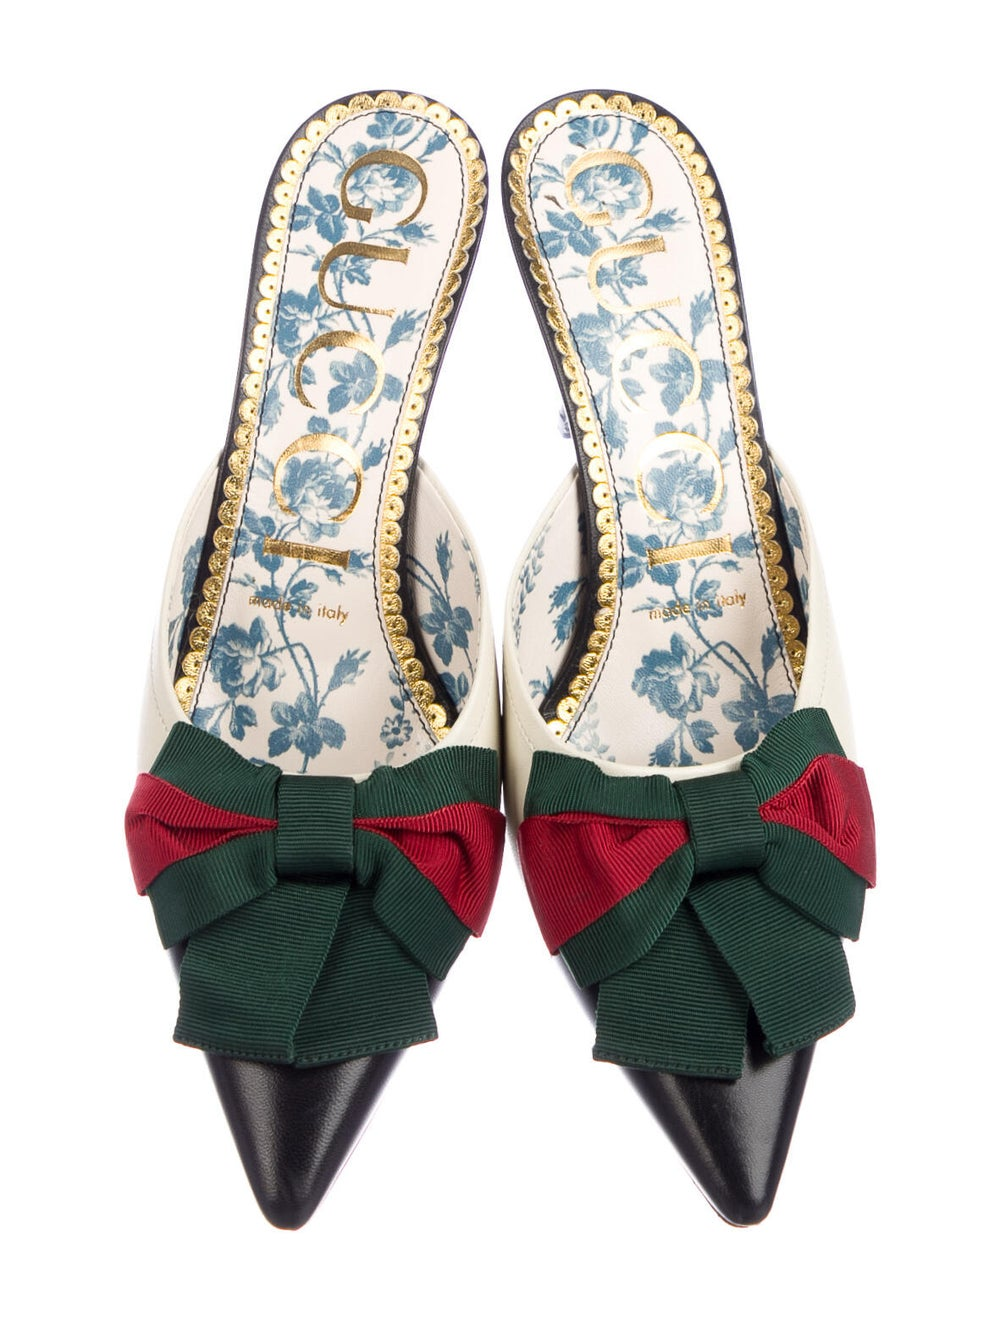 Gucci Web Accent Leather Mules - image 3